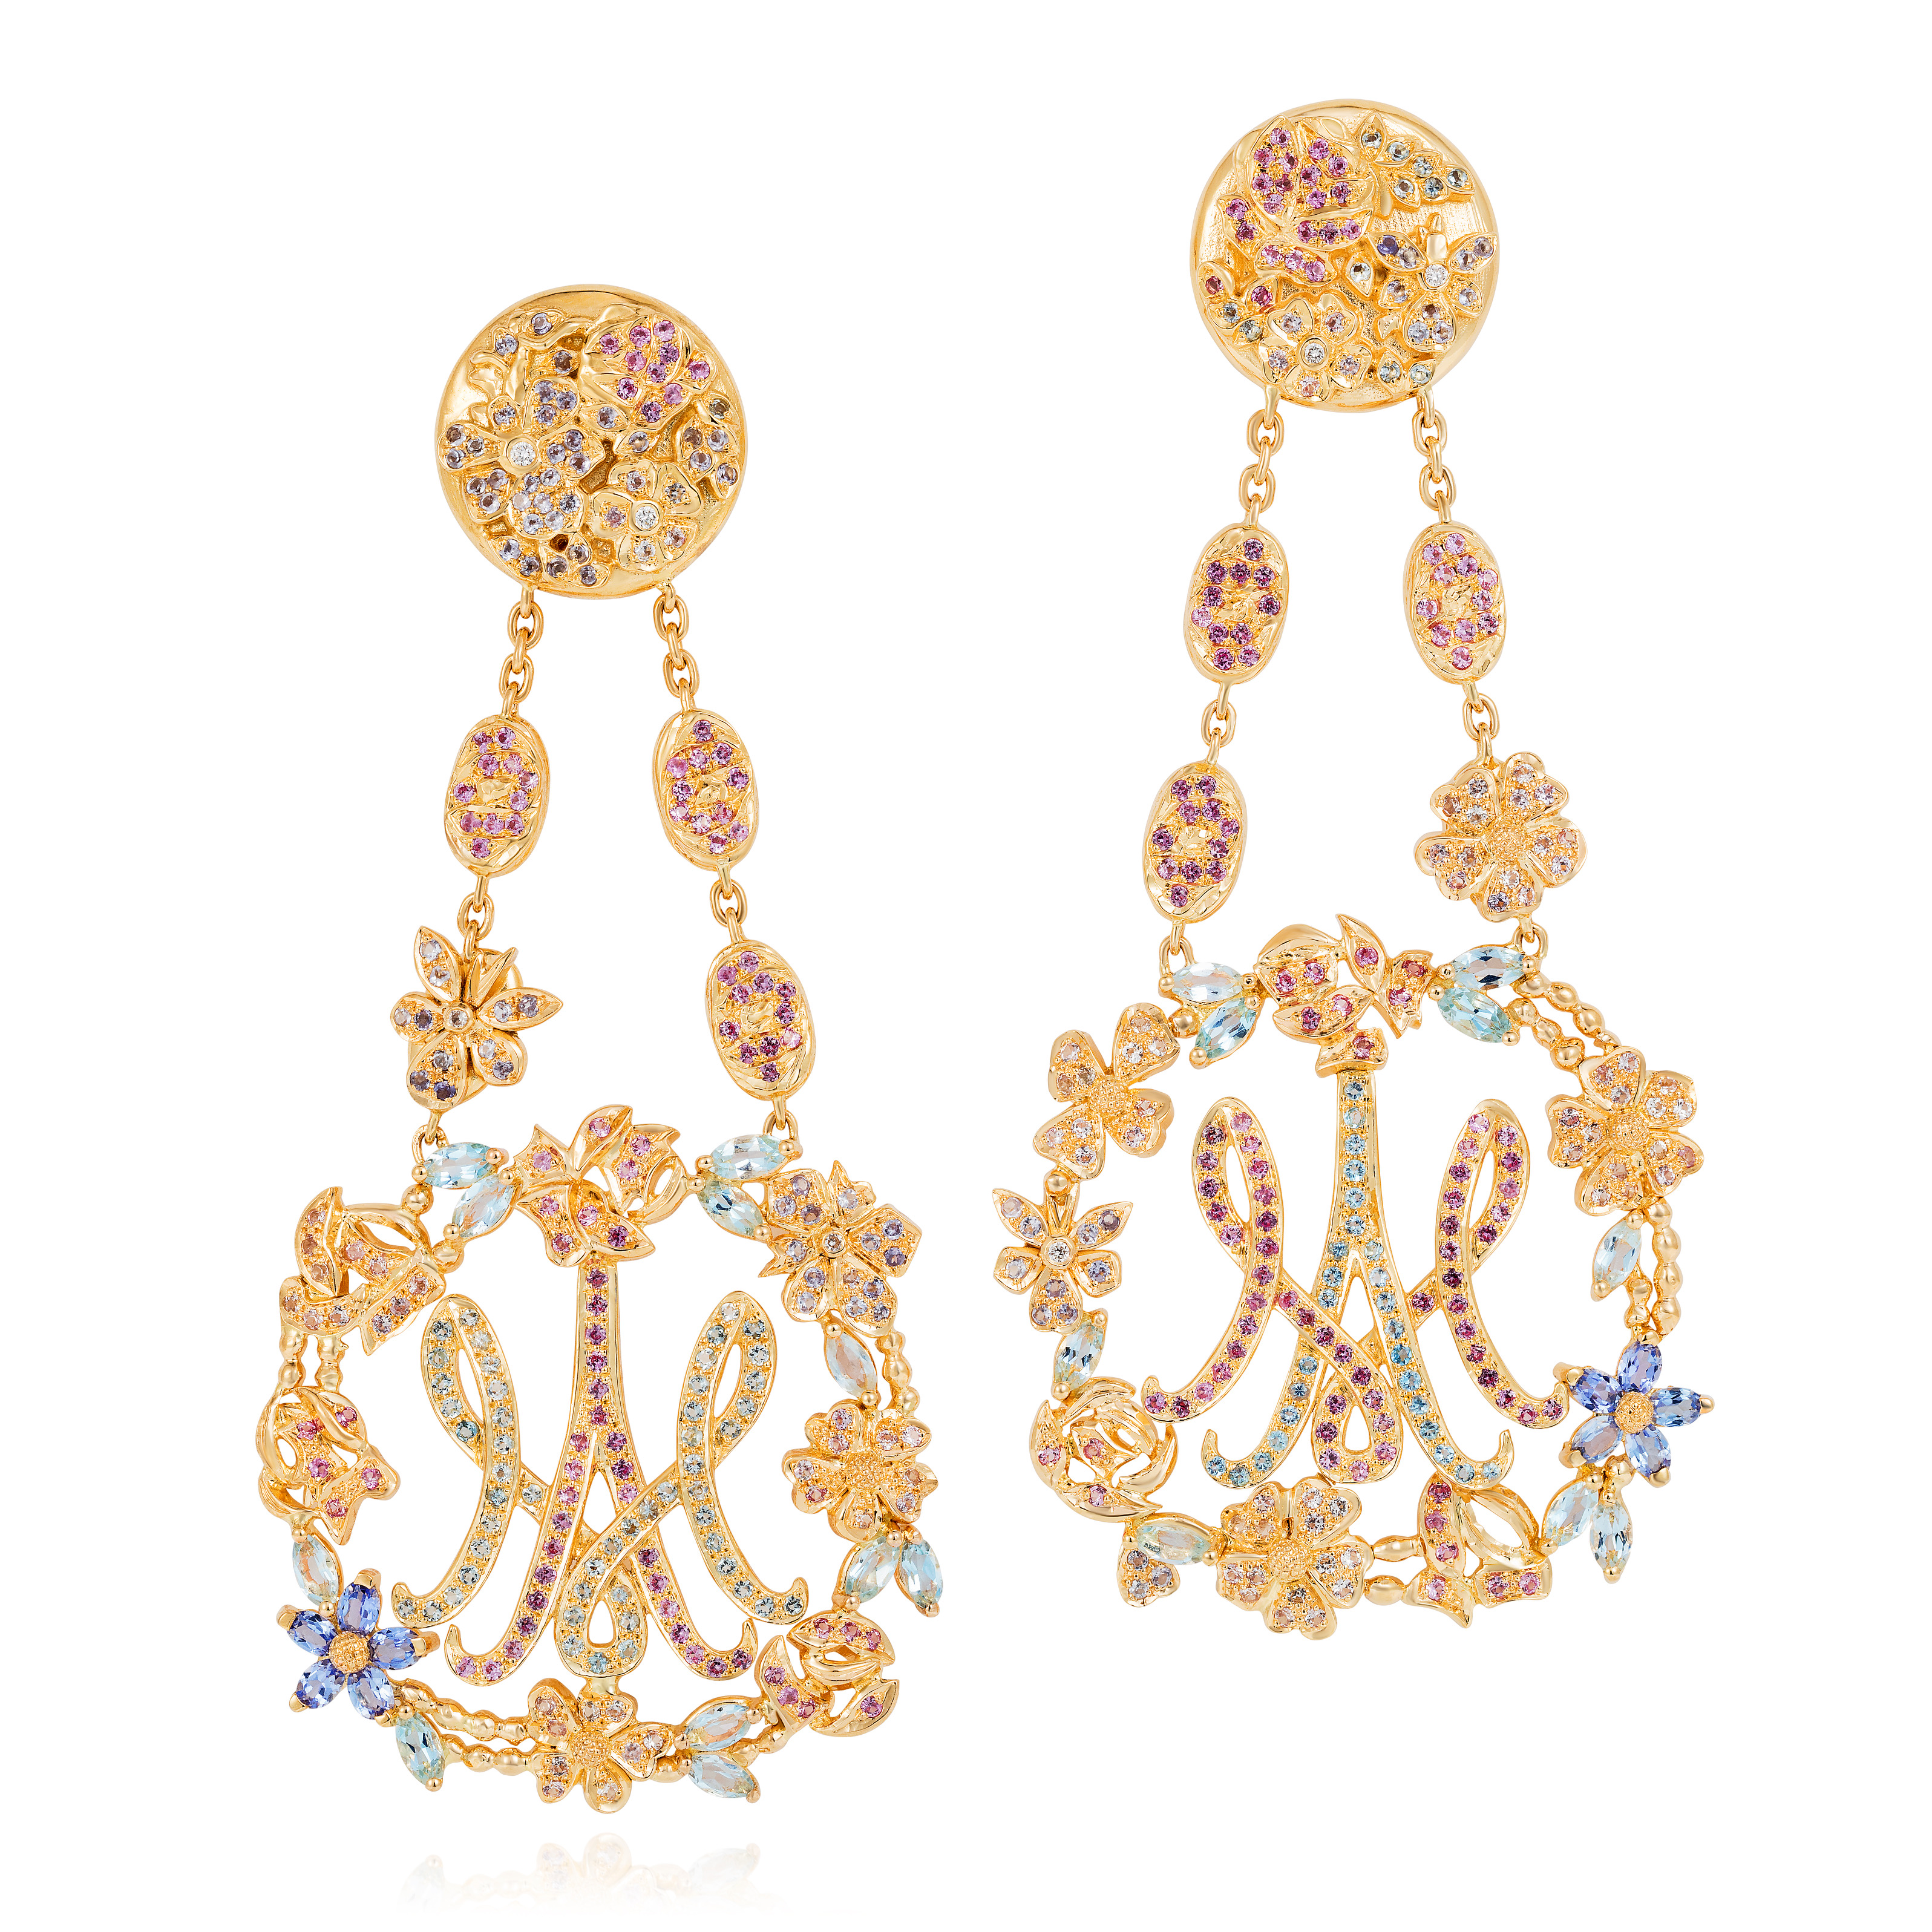 Antoinette Earrings Inspired By The Gardens Of Marie Antoinette At Grand Trianon, Versailles And Celebrating The Flowers She Most Loved: Cabbage Roses In Dark Pink Sapphires, Dog Roses In Pale Pink Sapphires And Violets In Tanzanite With Accents In Aquamarine And Diamond 18k Gold